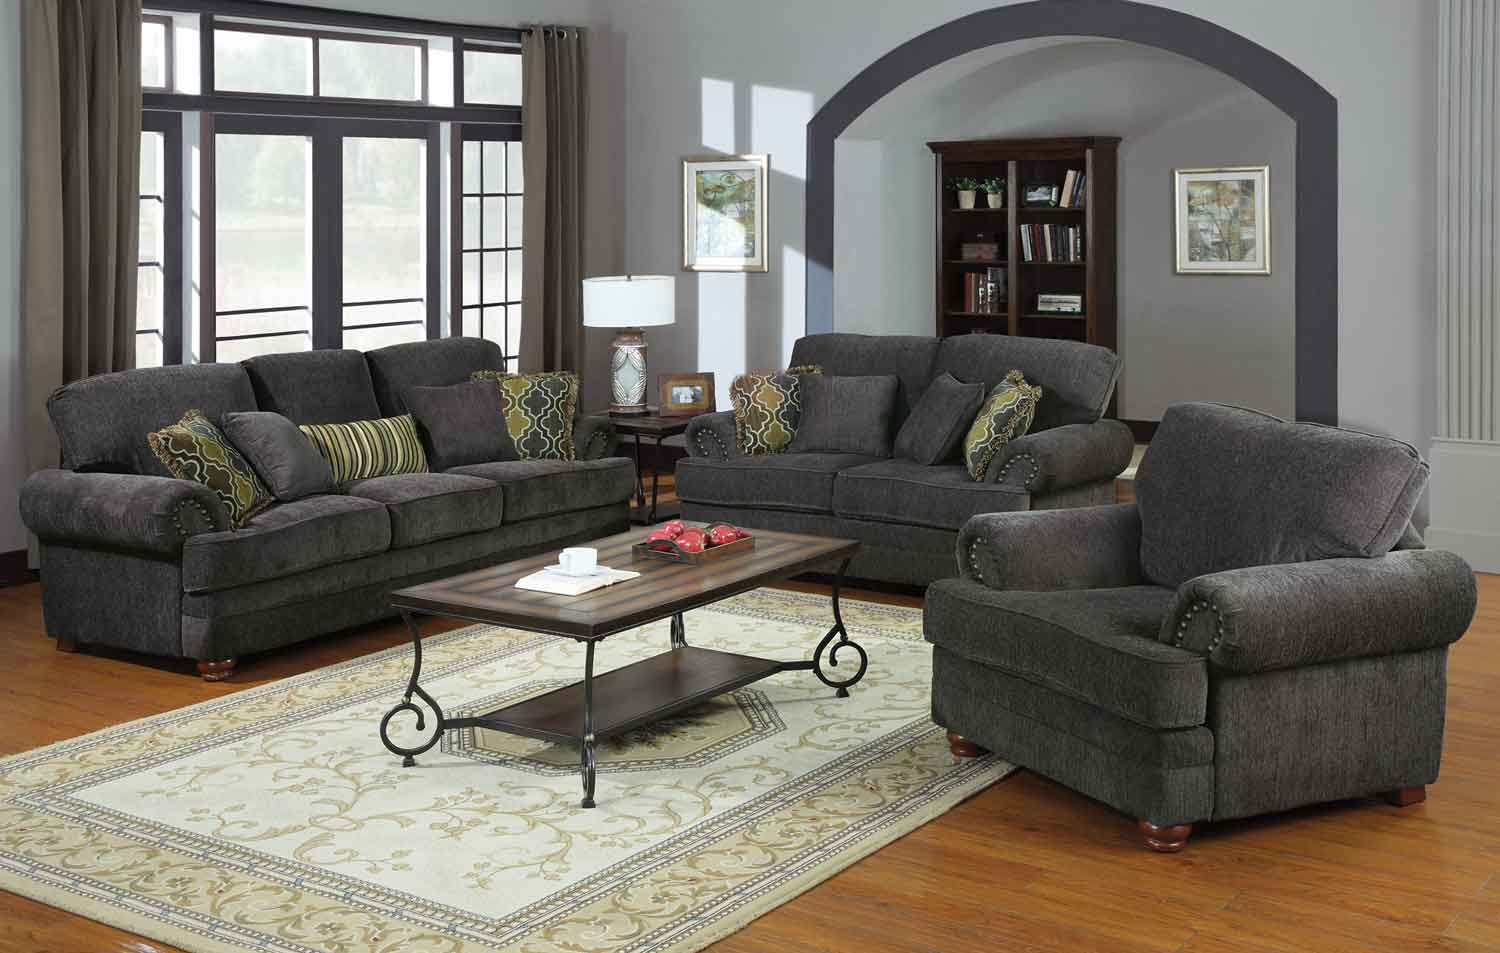 Coaster Colton Living Room Set - Smokey Grey